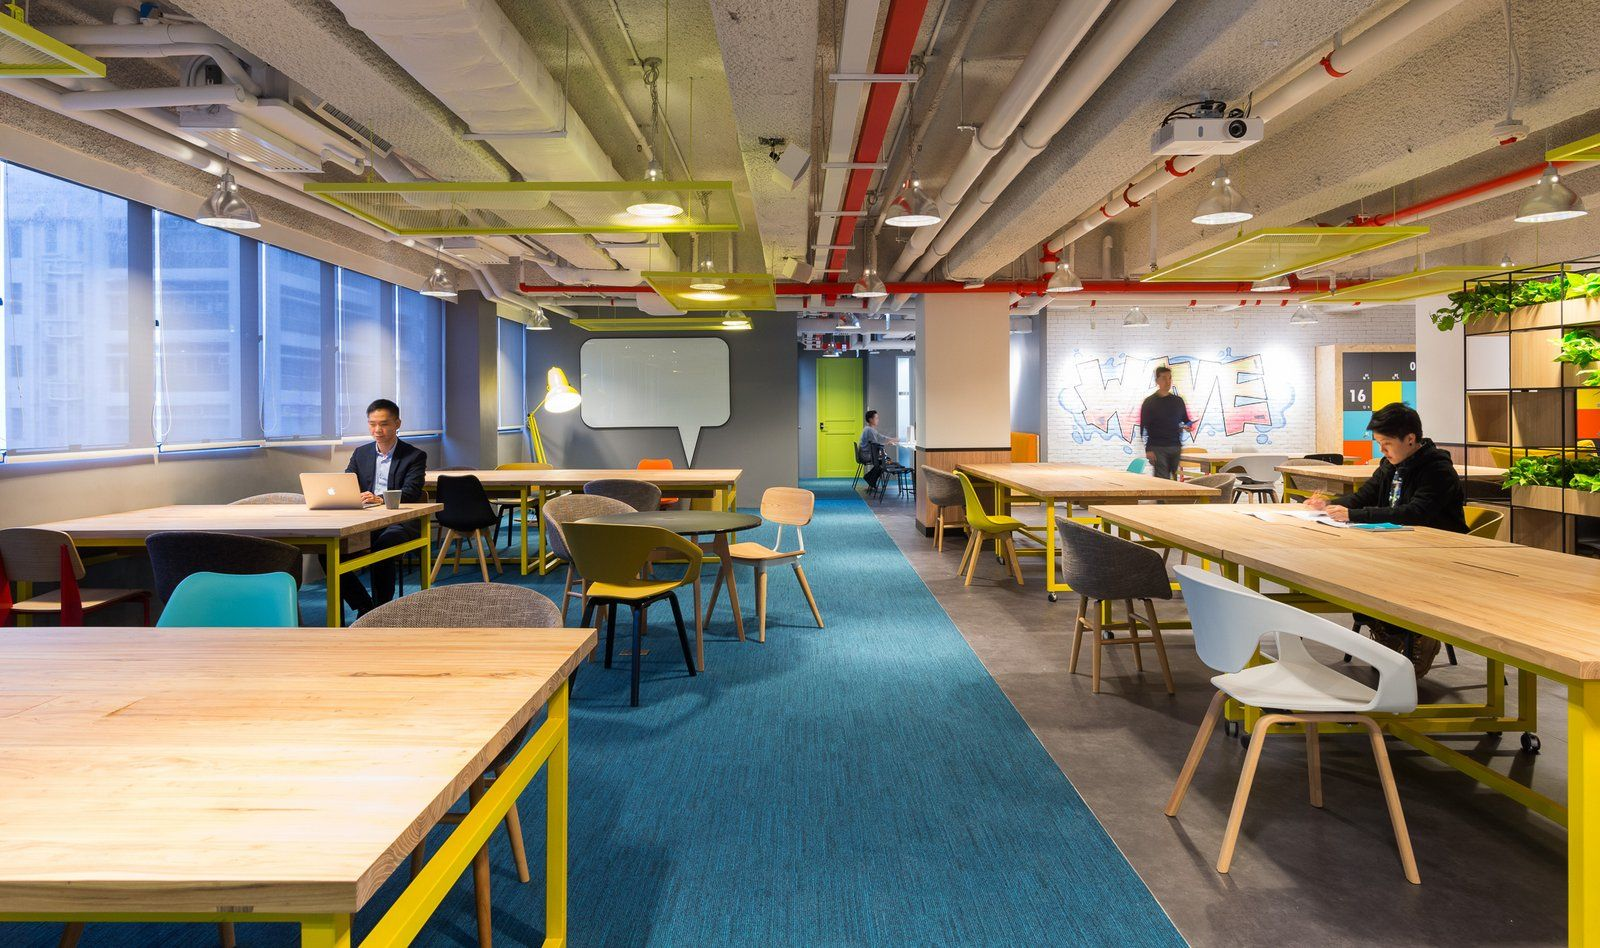 Office space in hong kong 9gag Spatial Concept Has Designed The New Coworking Office Space The Wave Located In Hong Kong The Wave Coworking Space Provides Platform To Start Ups And Hong Kong Serviced Office Space Rental Agents Office Tour The Wave Coworking Offices Hong Kong Office Design